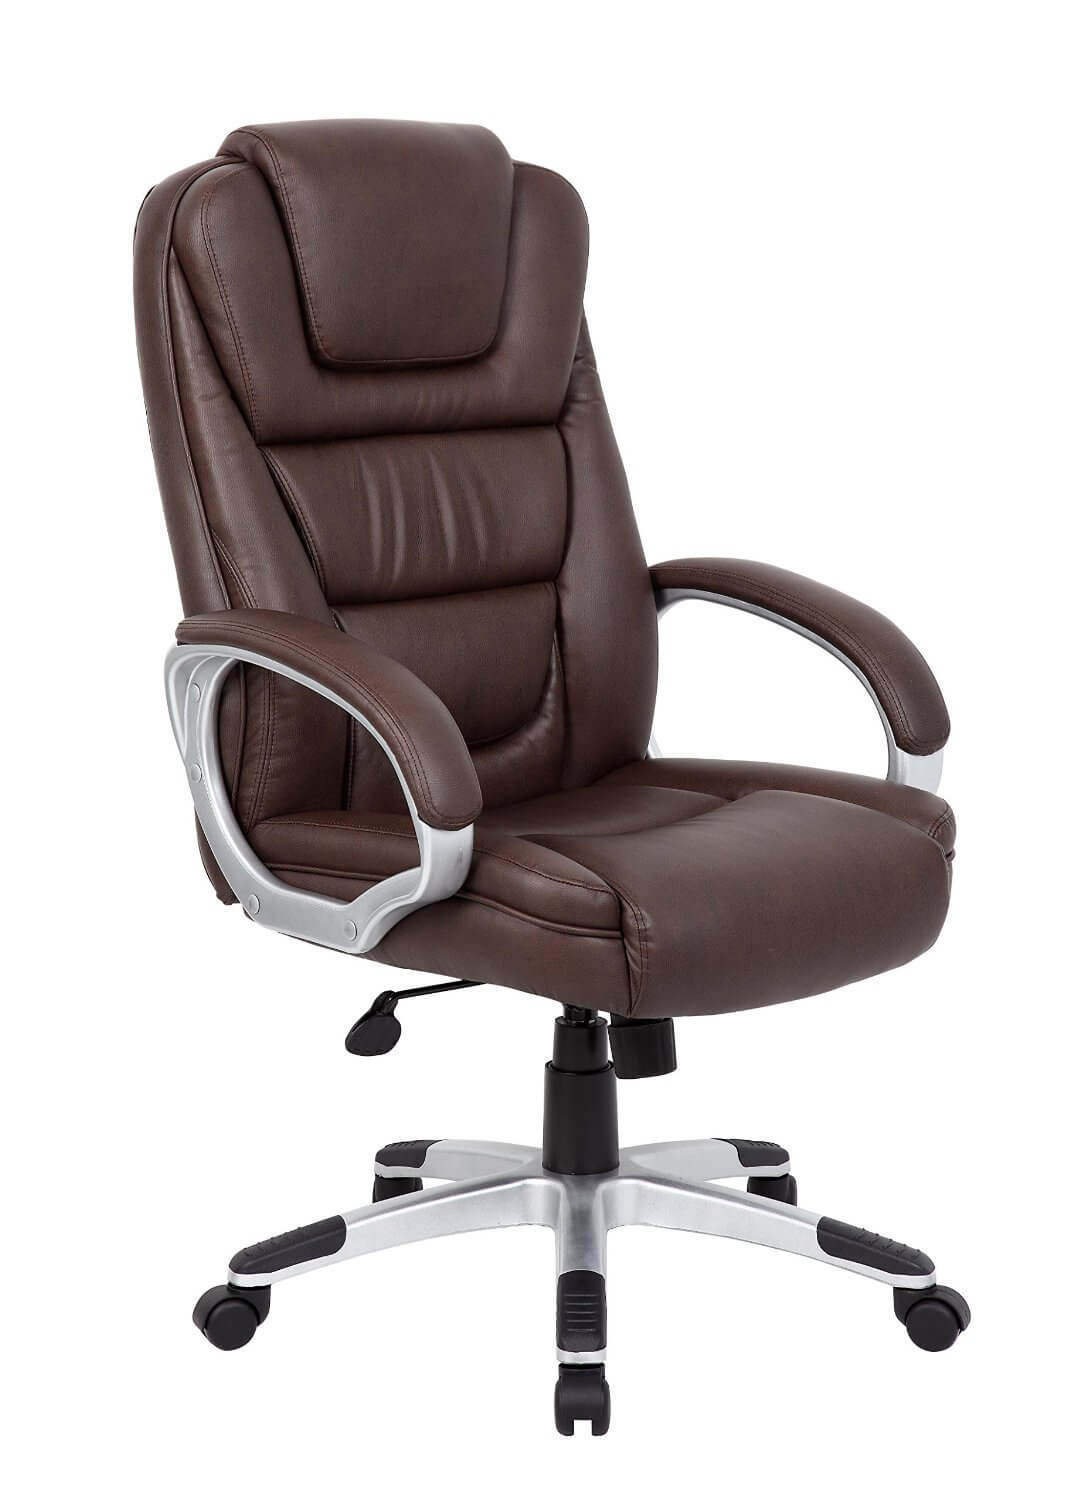 Boss LeatherPlus Executive Cheap Office Chairs